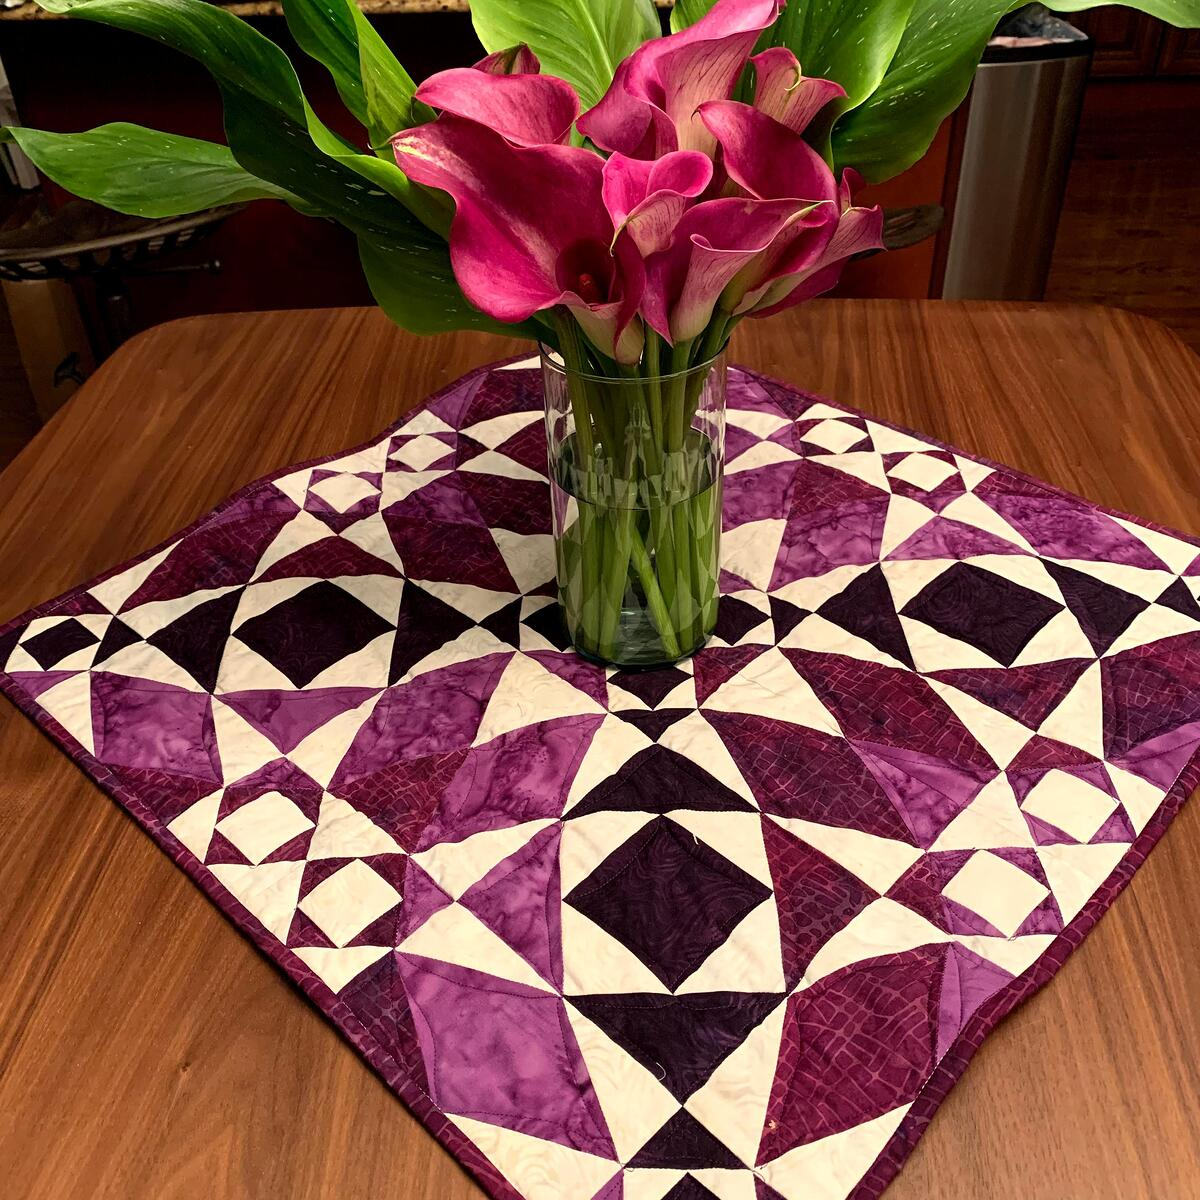 Purple Storm at Sea Quilt with calla lillies